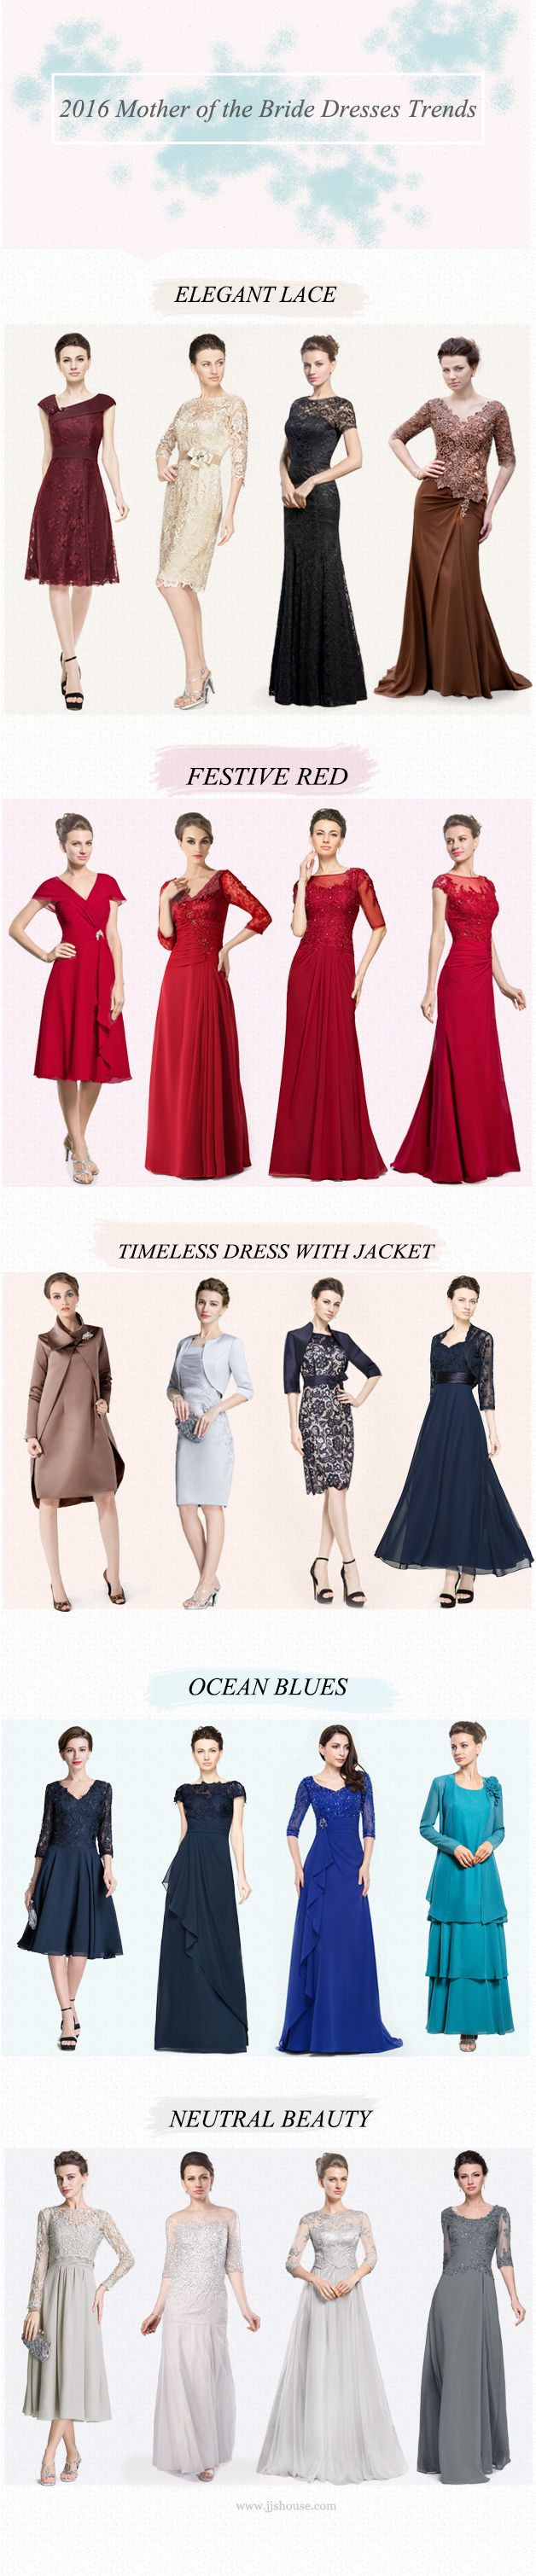 2016 Mother of the Bride Dress Trends  Different Shades to Suit Your Mood & Event Season Which is your favourite? We have all colours from Neutrals, to Pastels, to Brights. Let your dress reflect you. #JJsHouse